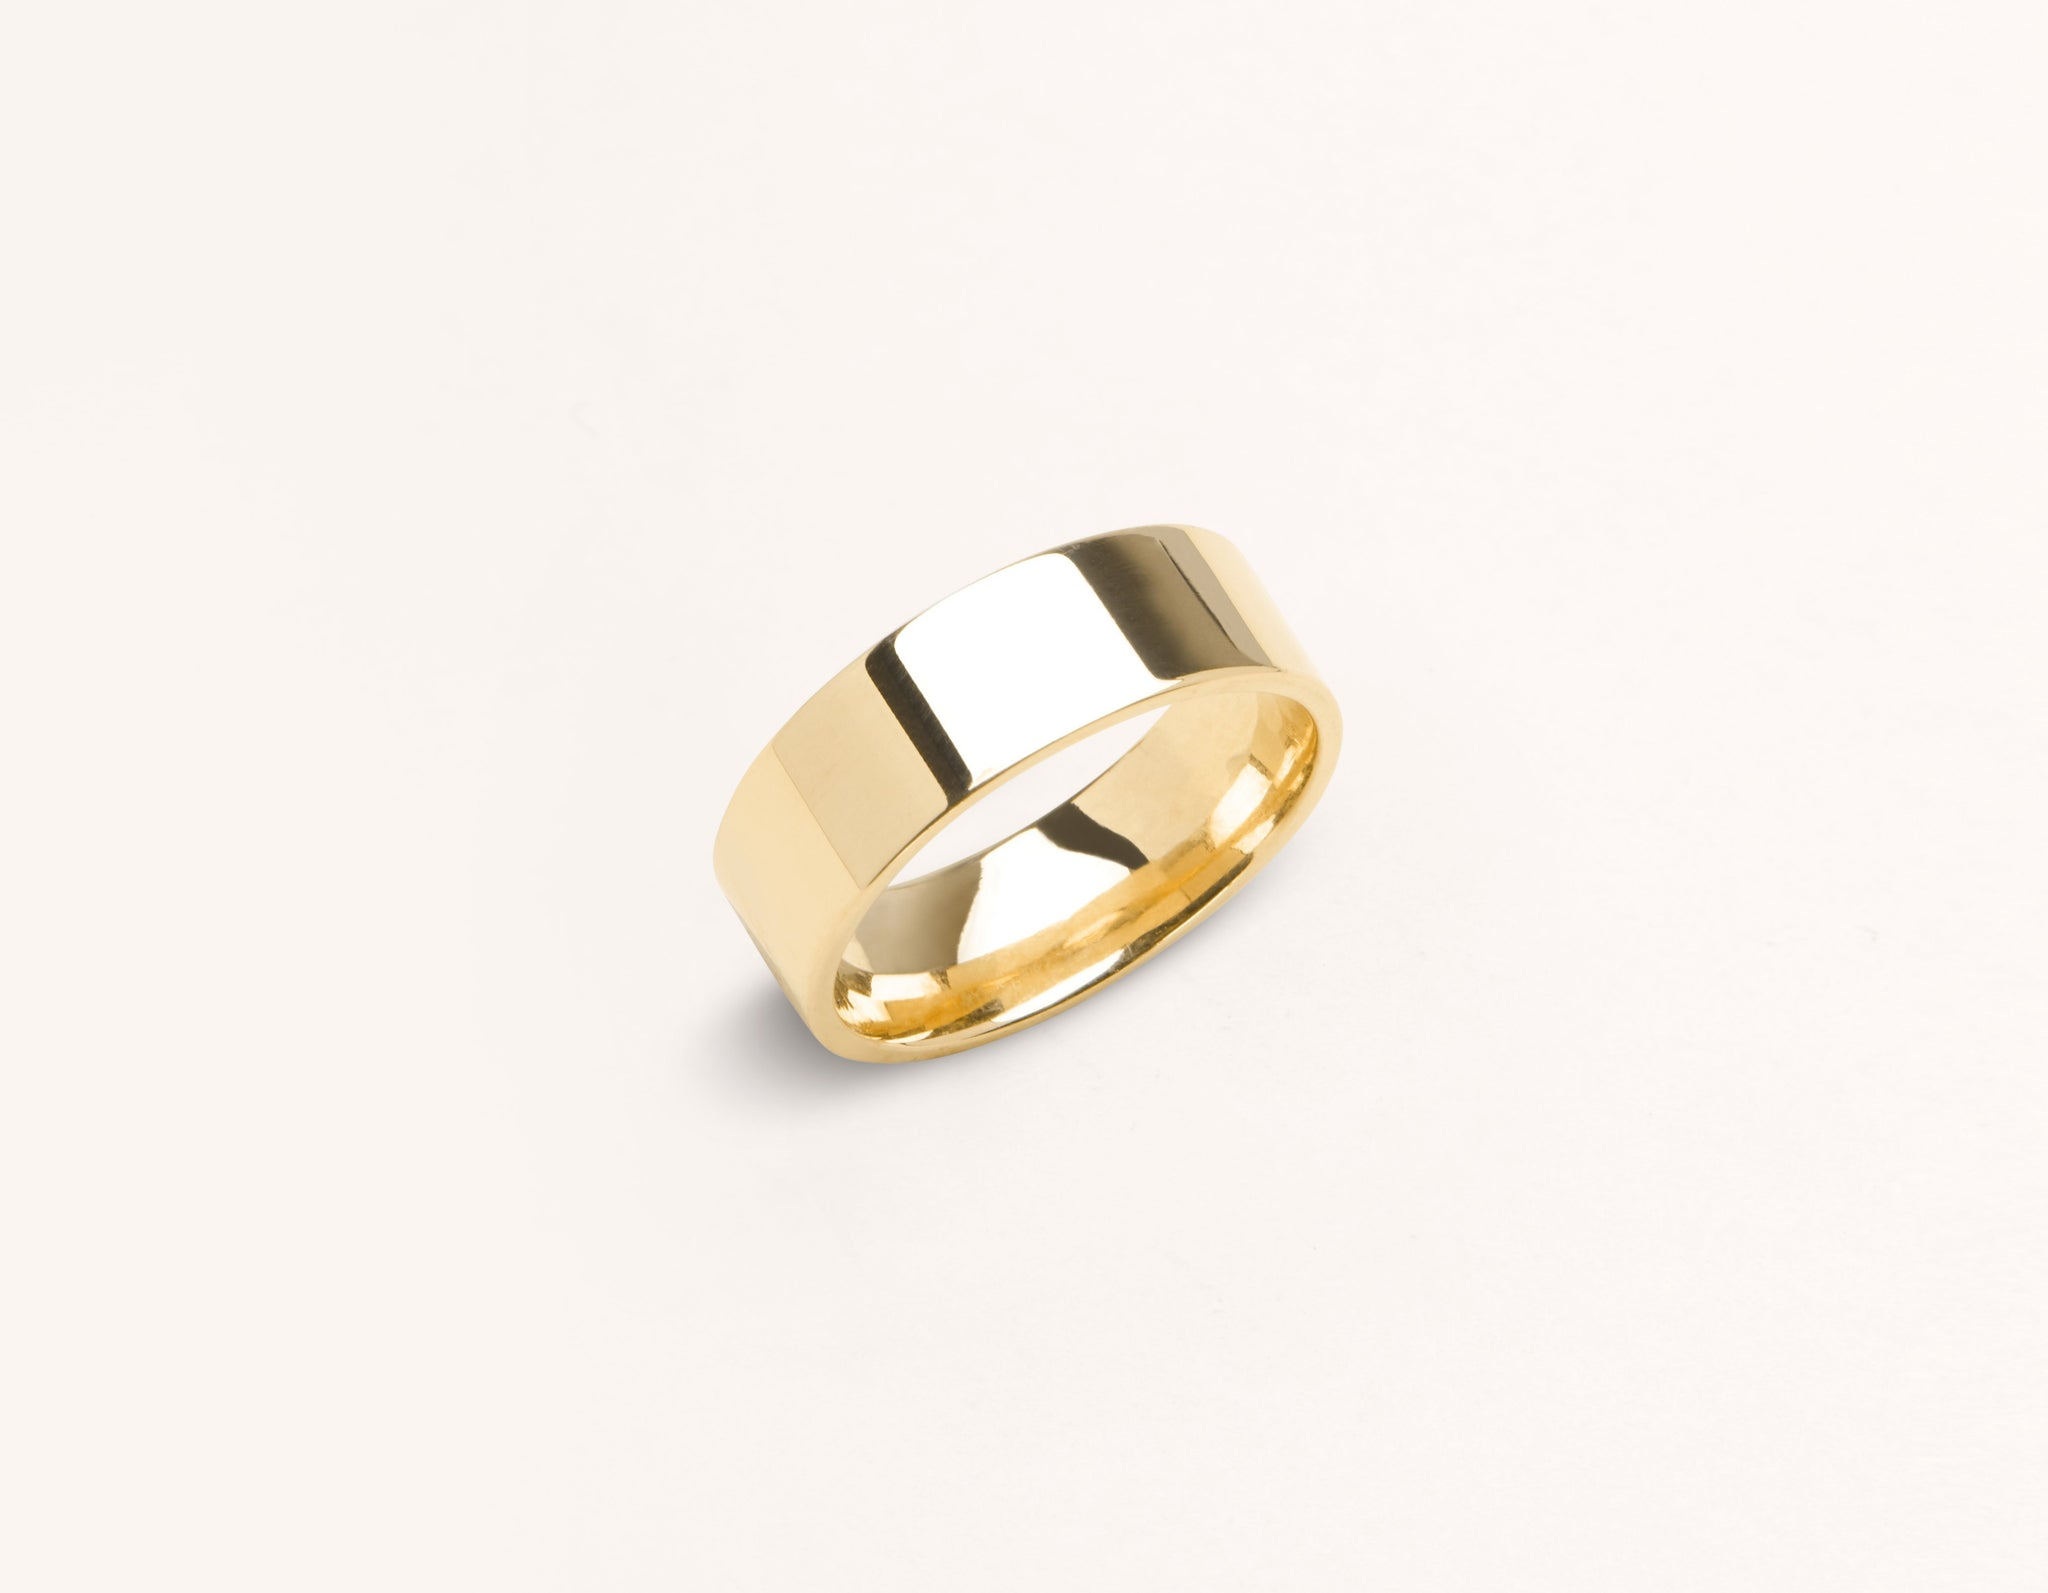 Minimalist 18k solid yellow gold 6 mm Flat Wedding Band for men and women Vrai and Oro